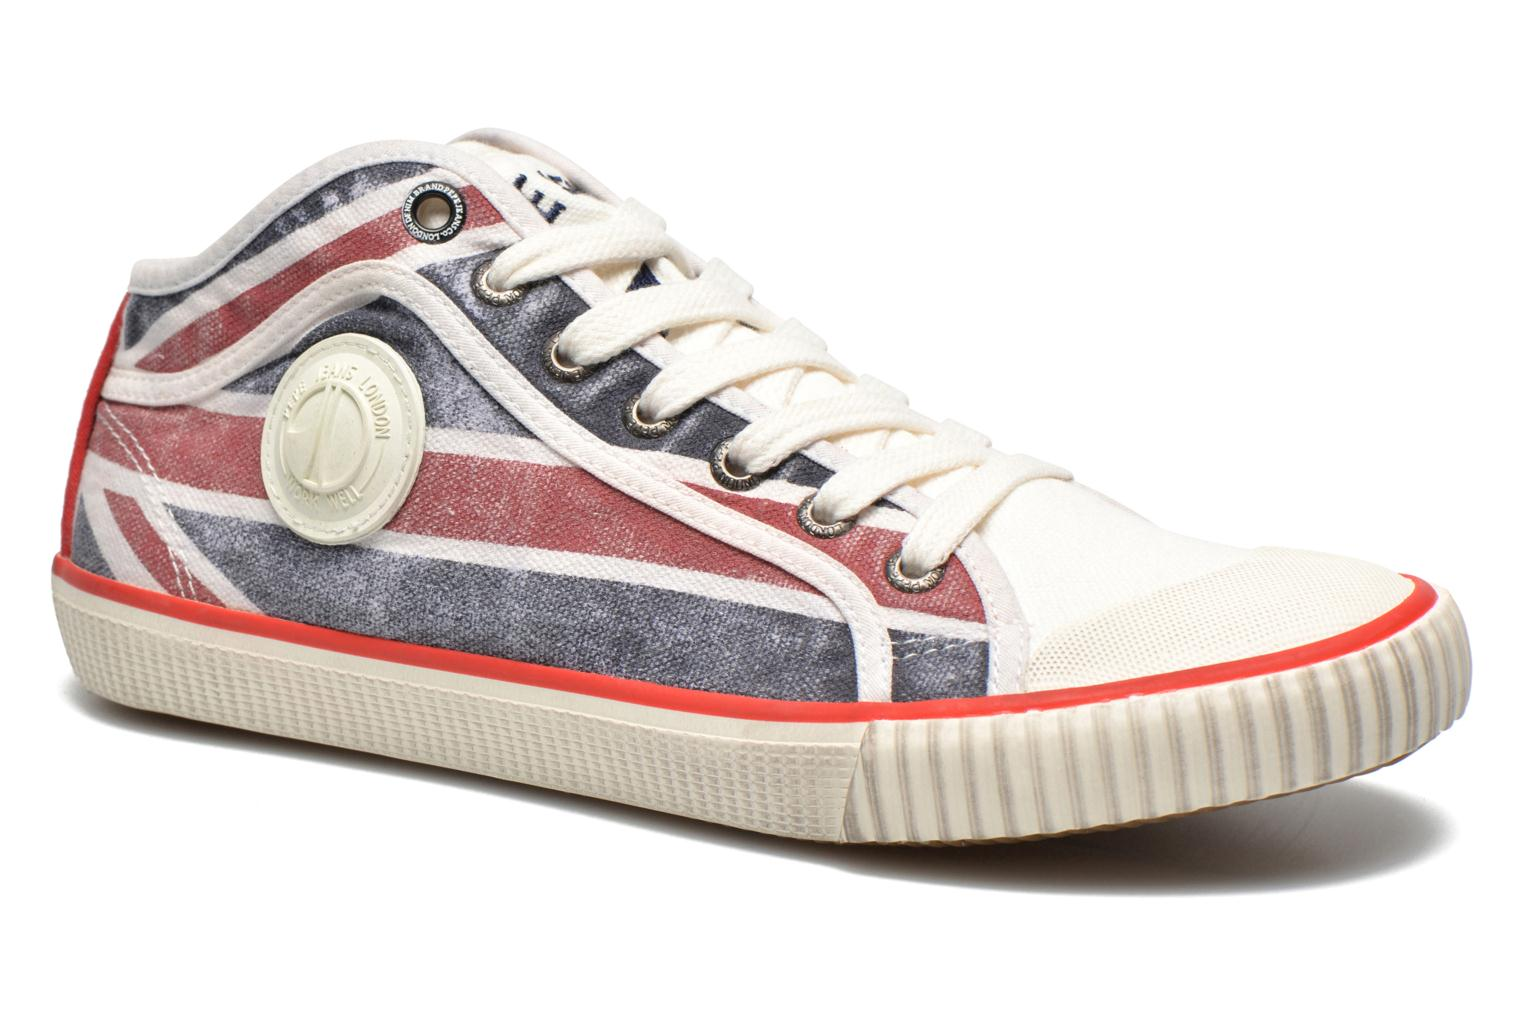 Sneakers Industry Flag Portobello by Pepe jeans